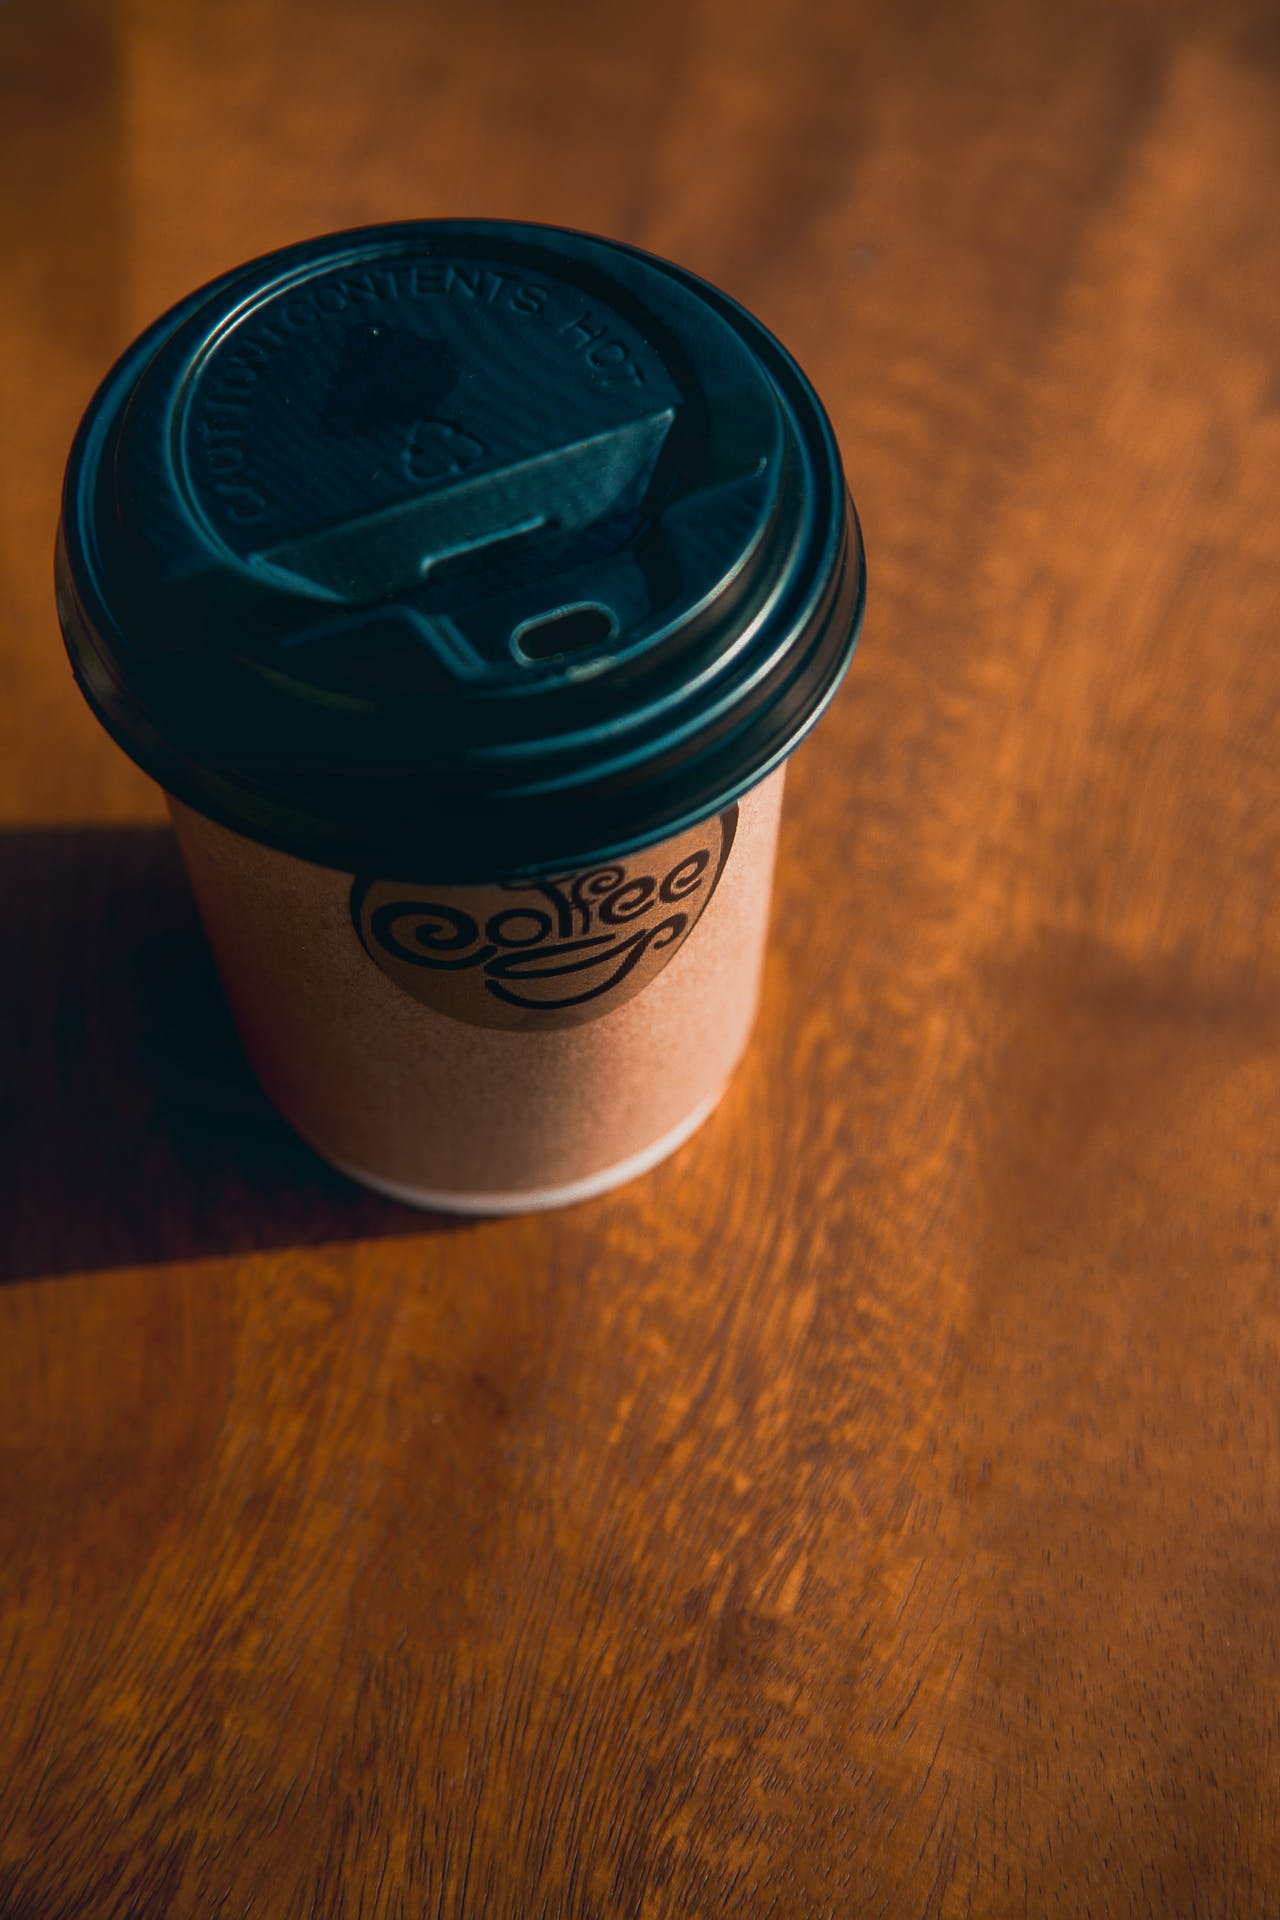 Free stock photo of coffee, cup, cappuccino, photography